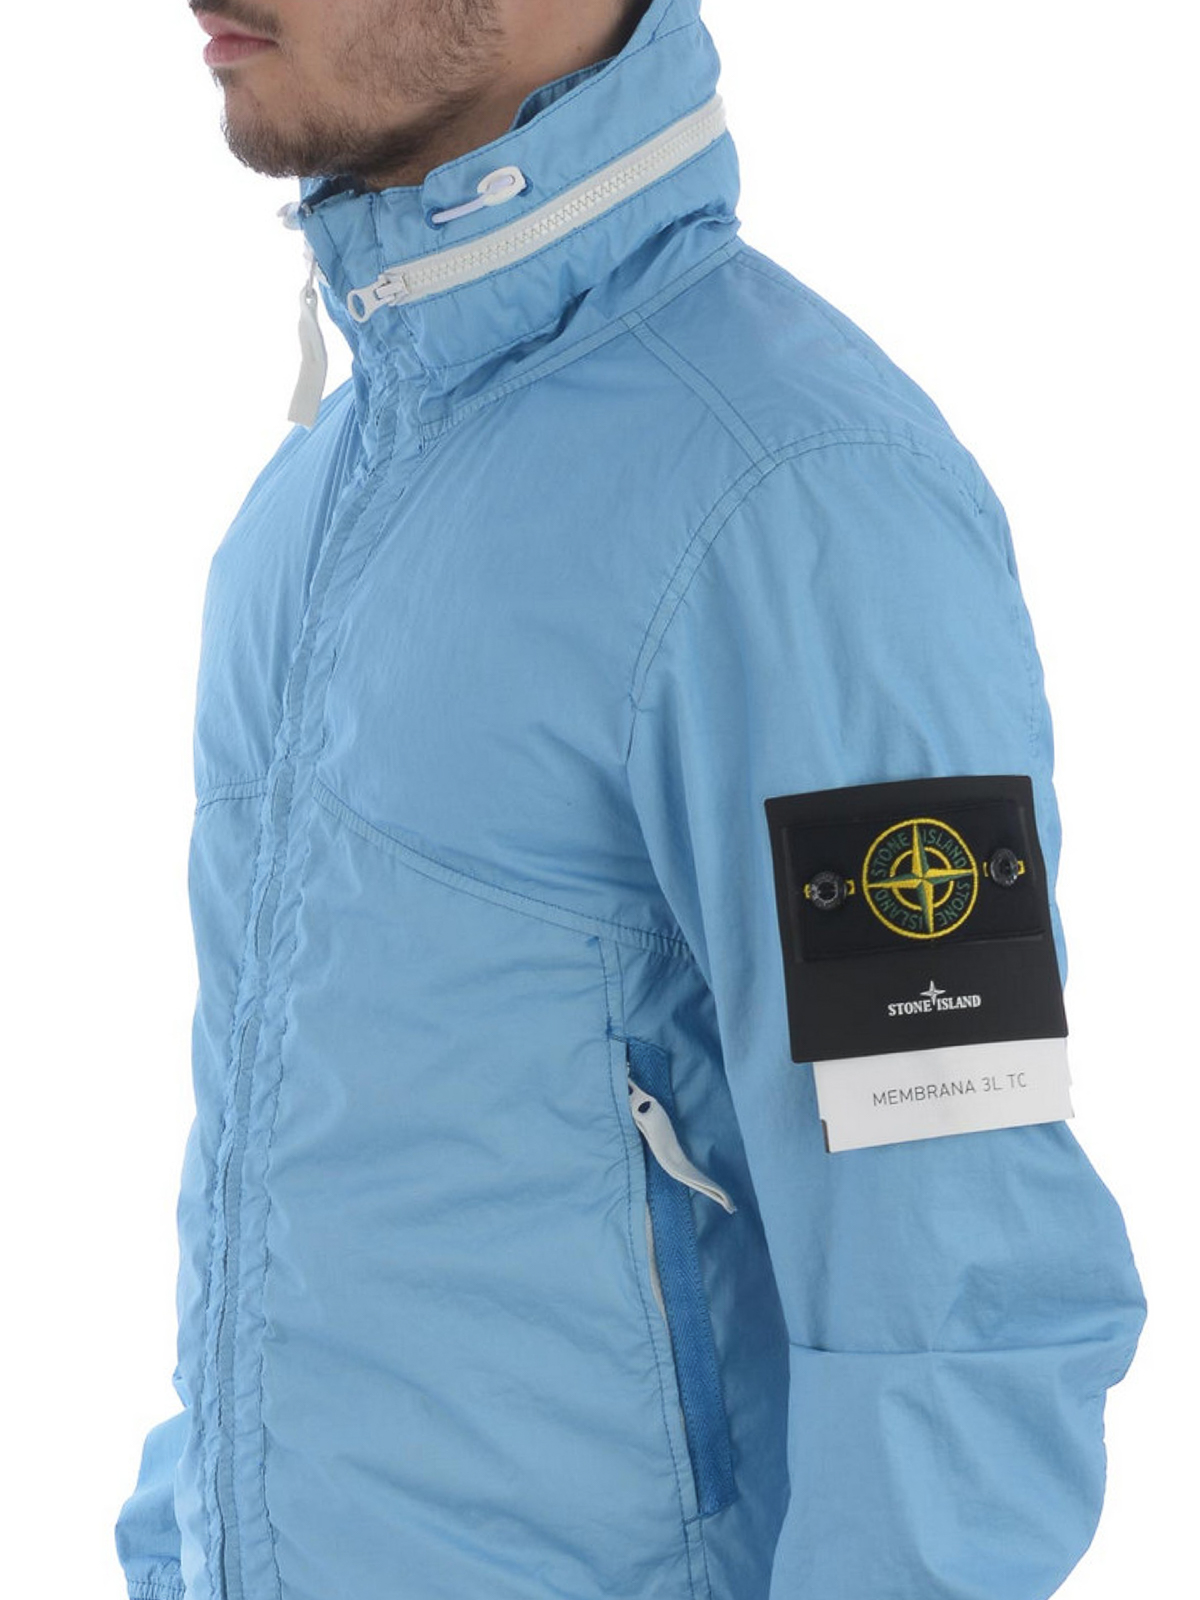 Stone Island Ltc Membrana Light Blue